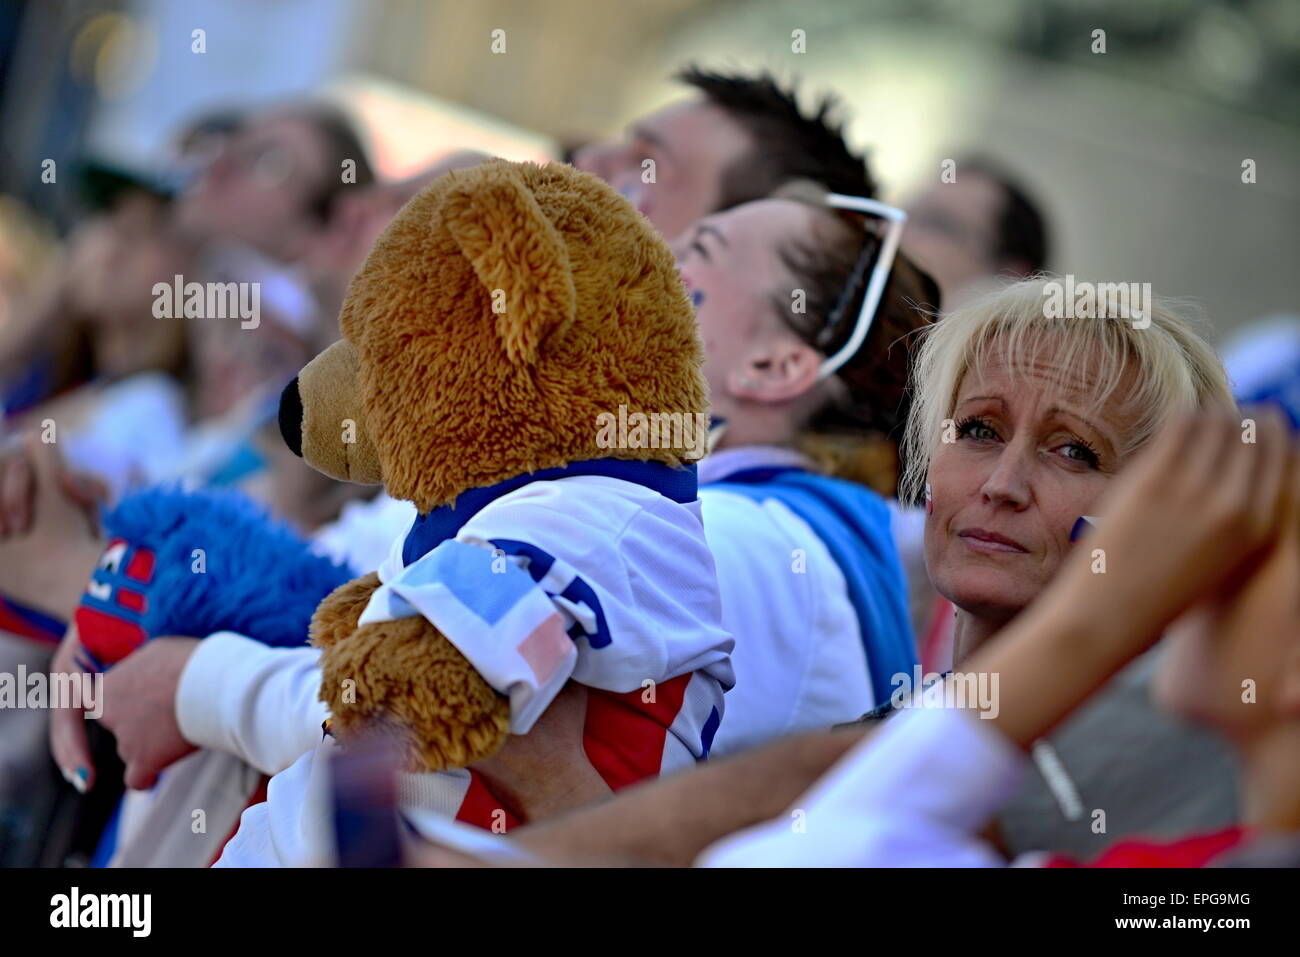 May 17, 2015, Prague In Czech republic. Czech fans in Old Town square during Ice Hockey championship. May 17, 2015, - Stock Image